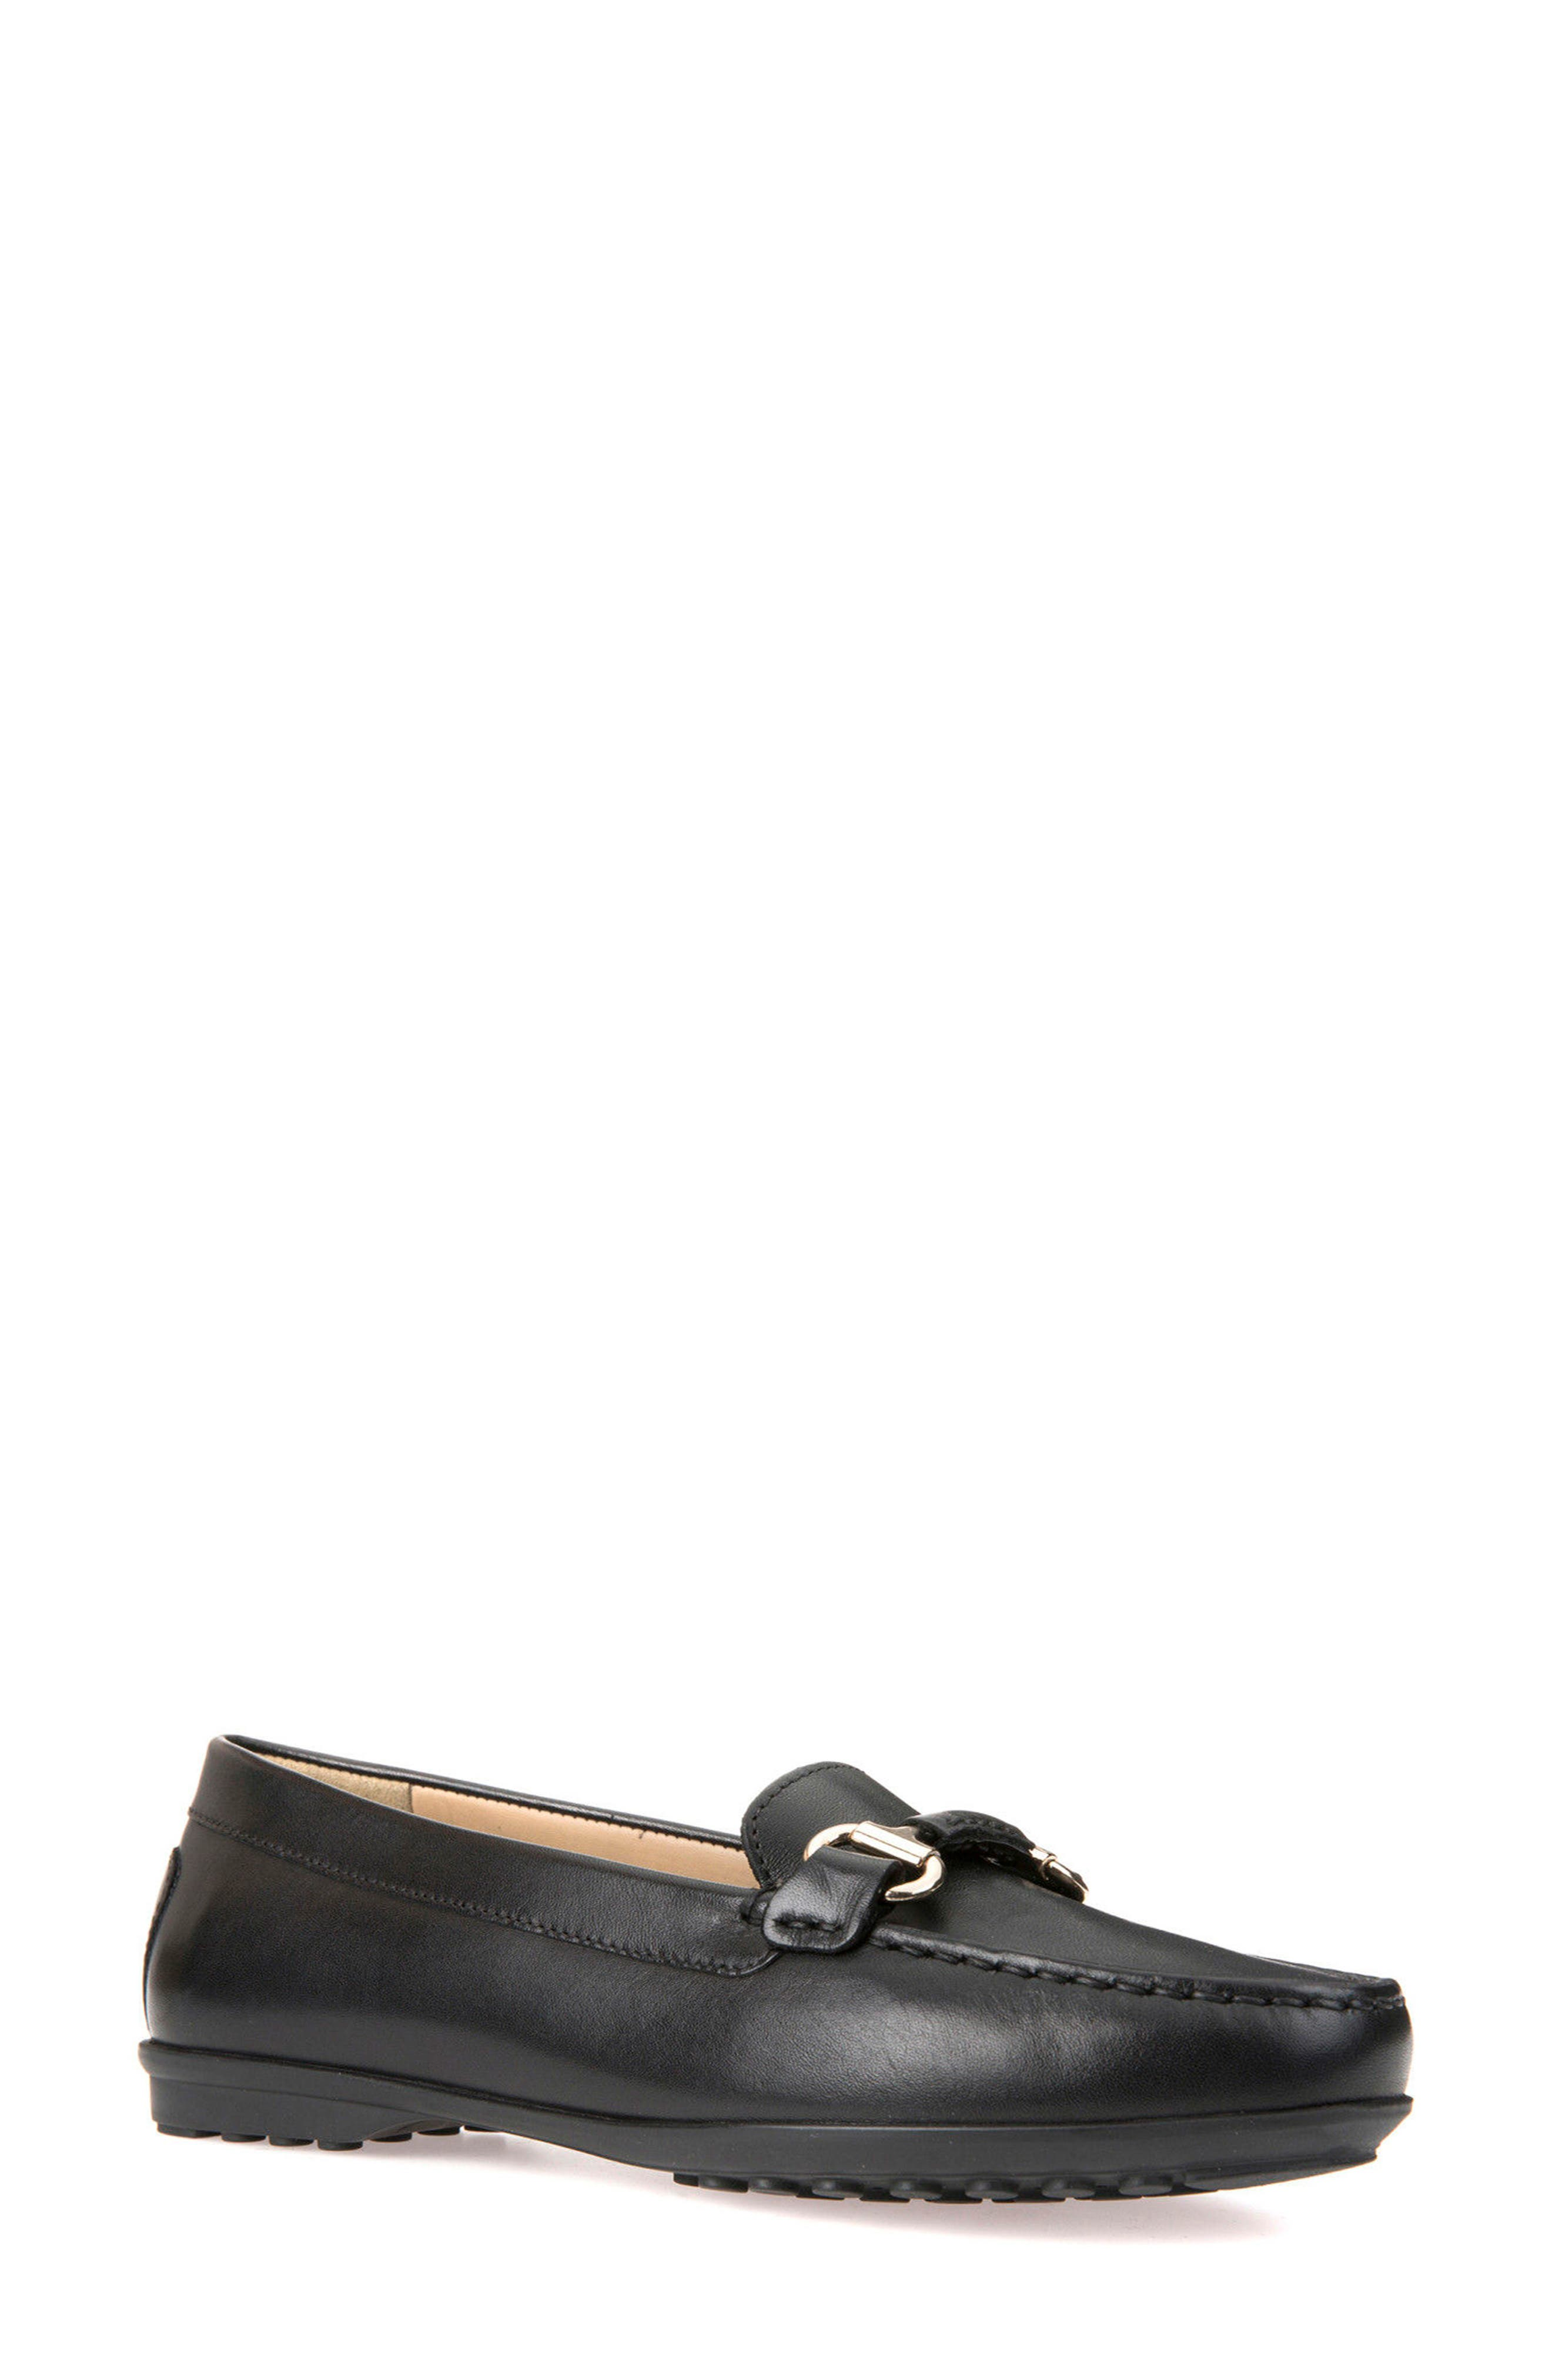 Elidia Buckle Loafer,                             Main thumbnail 1, color,                             Black Leather